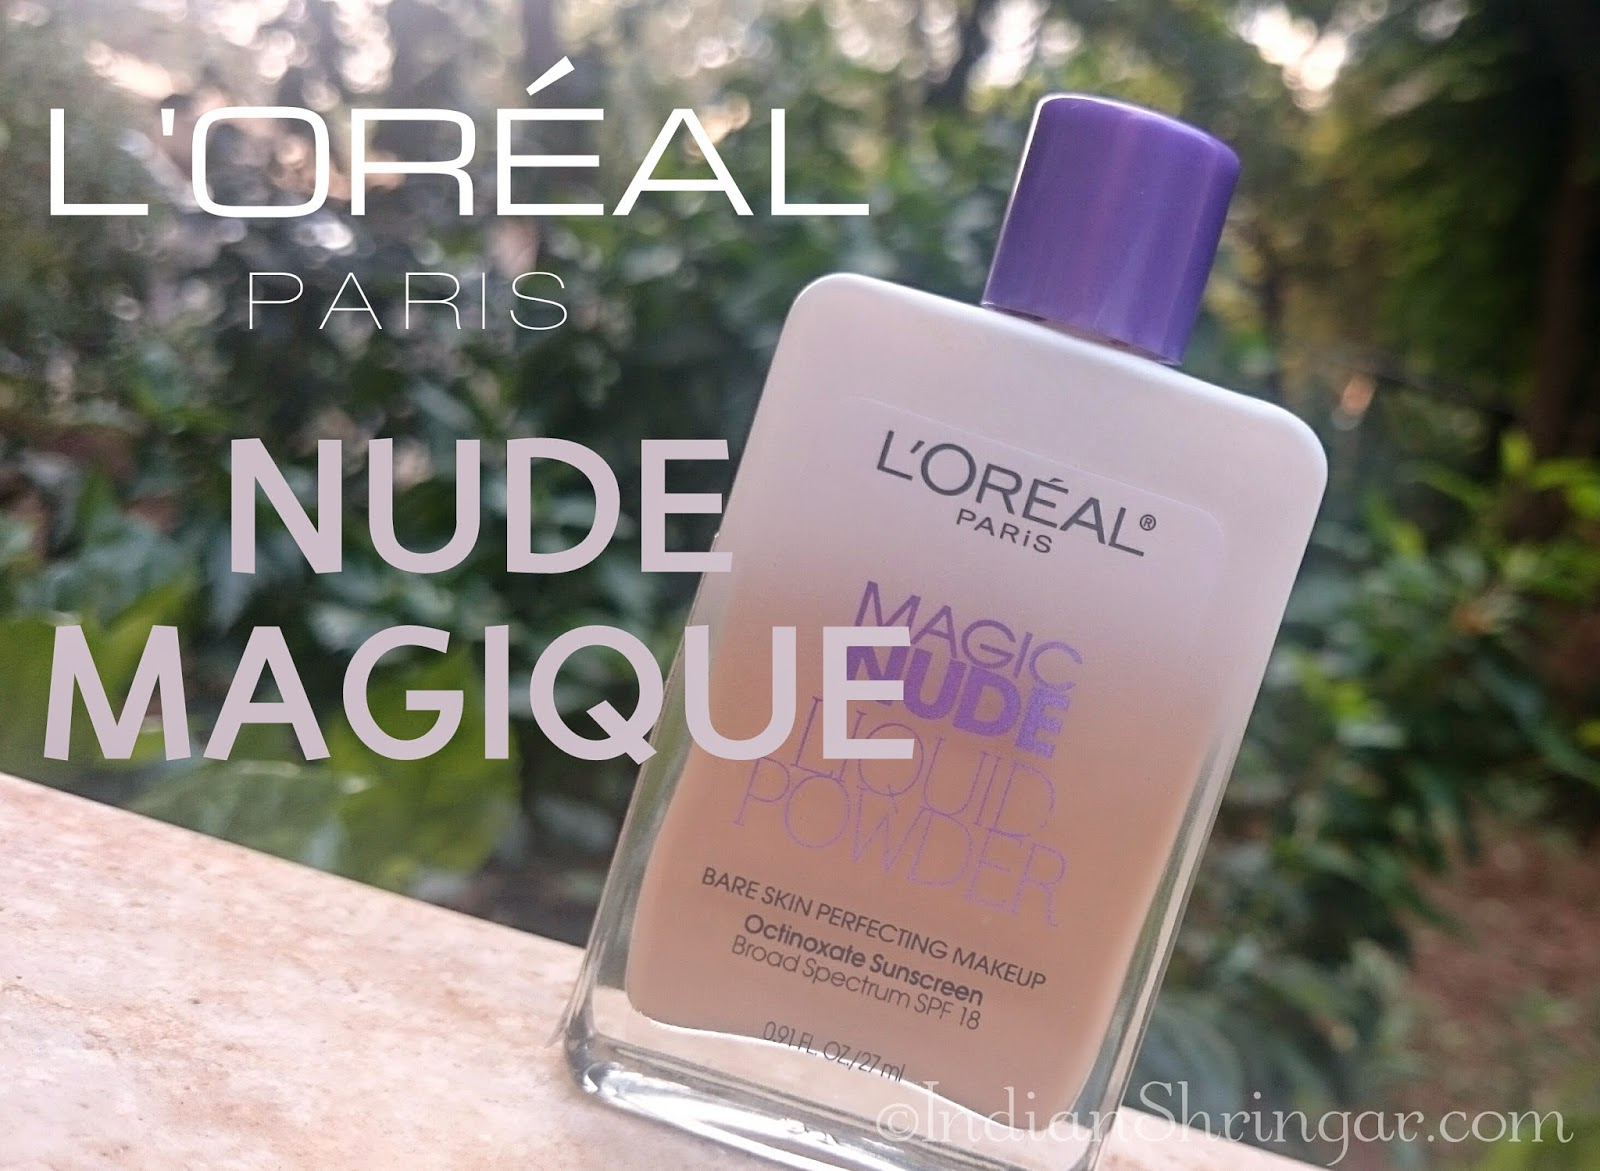 L'Oreal Paris Nude Magique Foundation in 320 Natural Beige - review and swatch